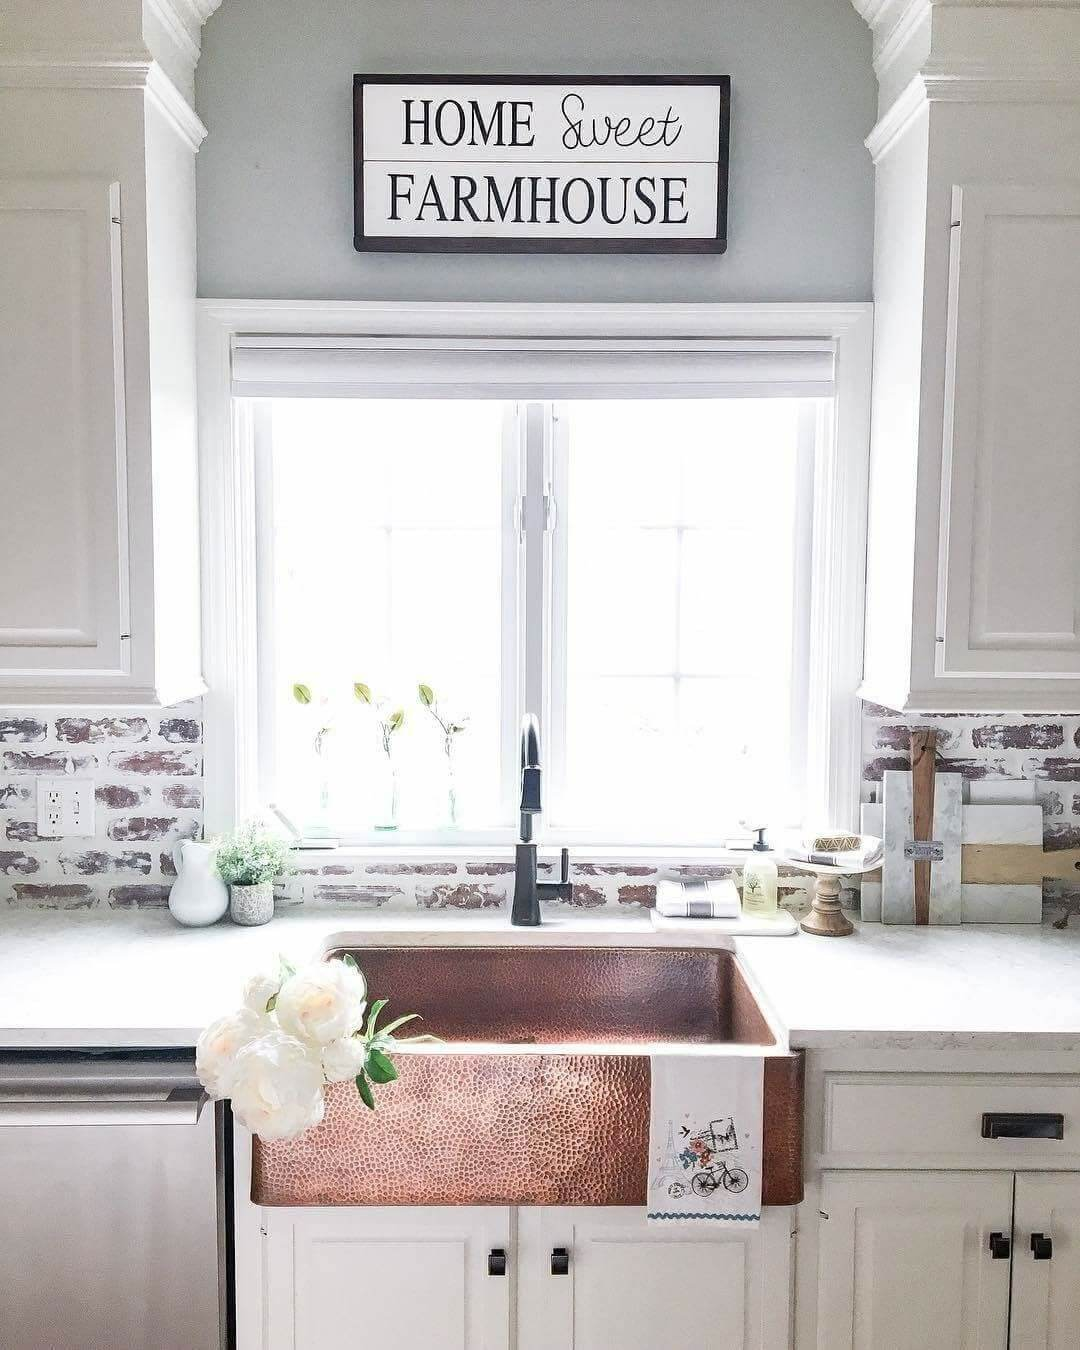 26 Farmhouse Kitchen Sink Ideas and Designs for 2020 on Kitchen Sink Ideas  id=33757